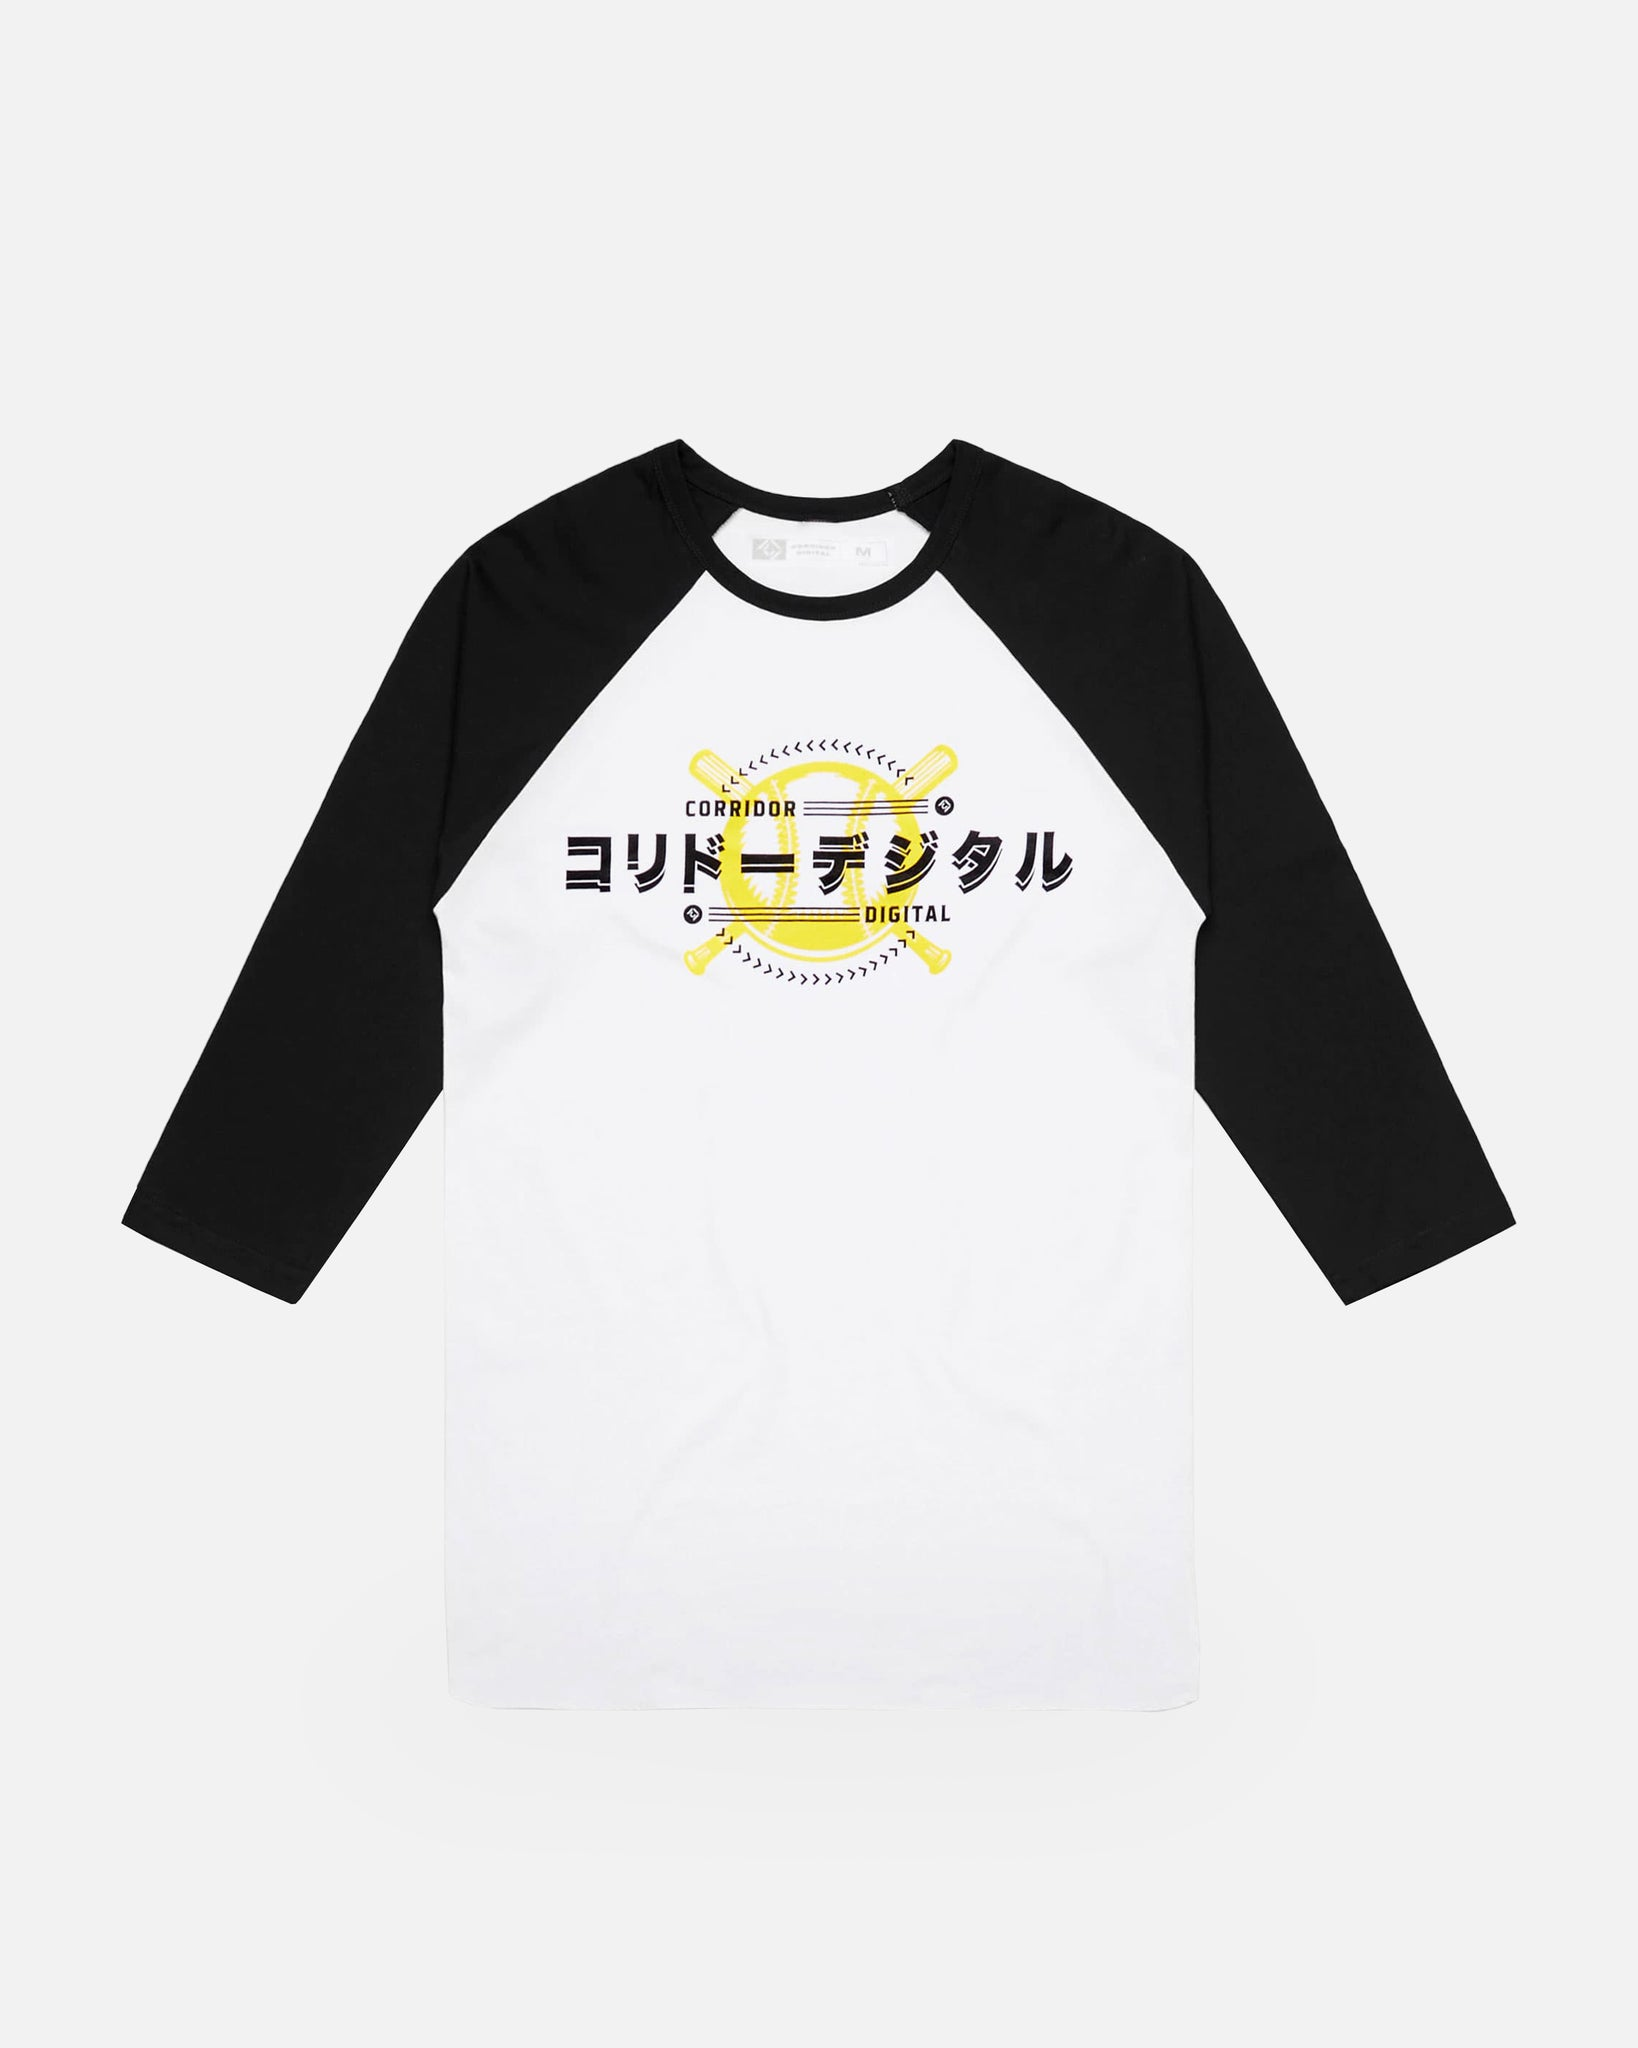 Corridor Baseball 3/4 Sleeve Raglan - White/Black